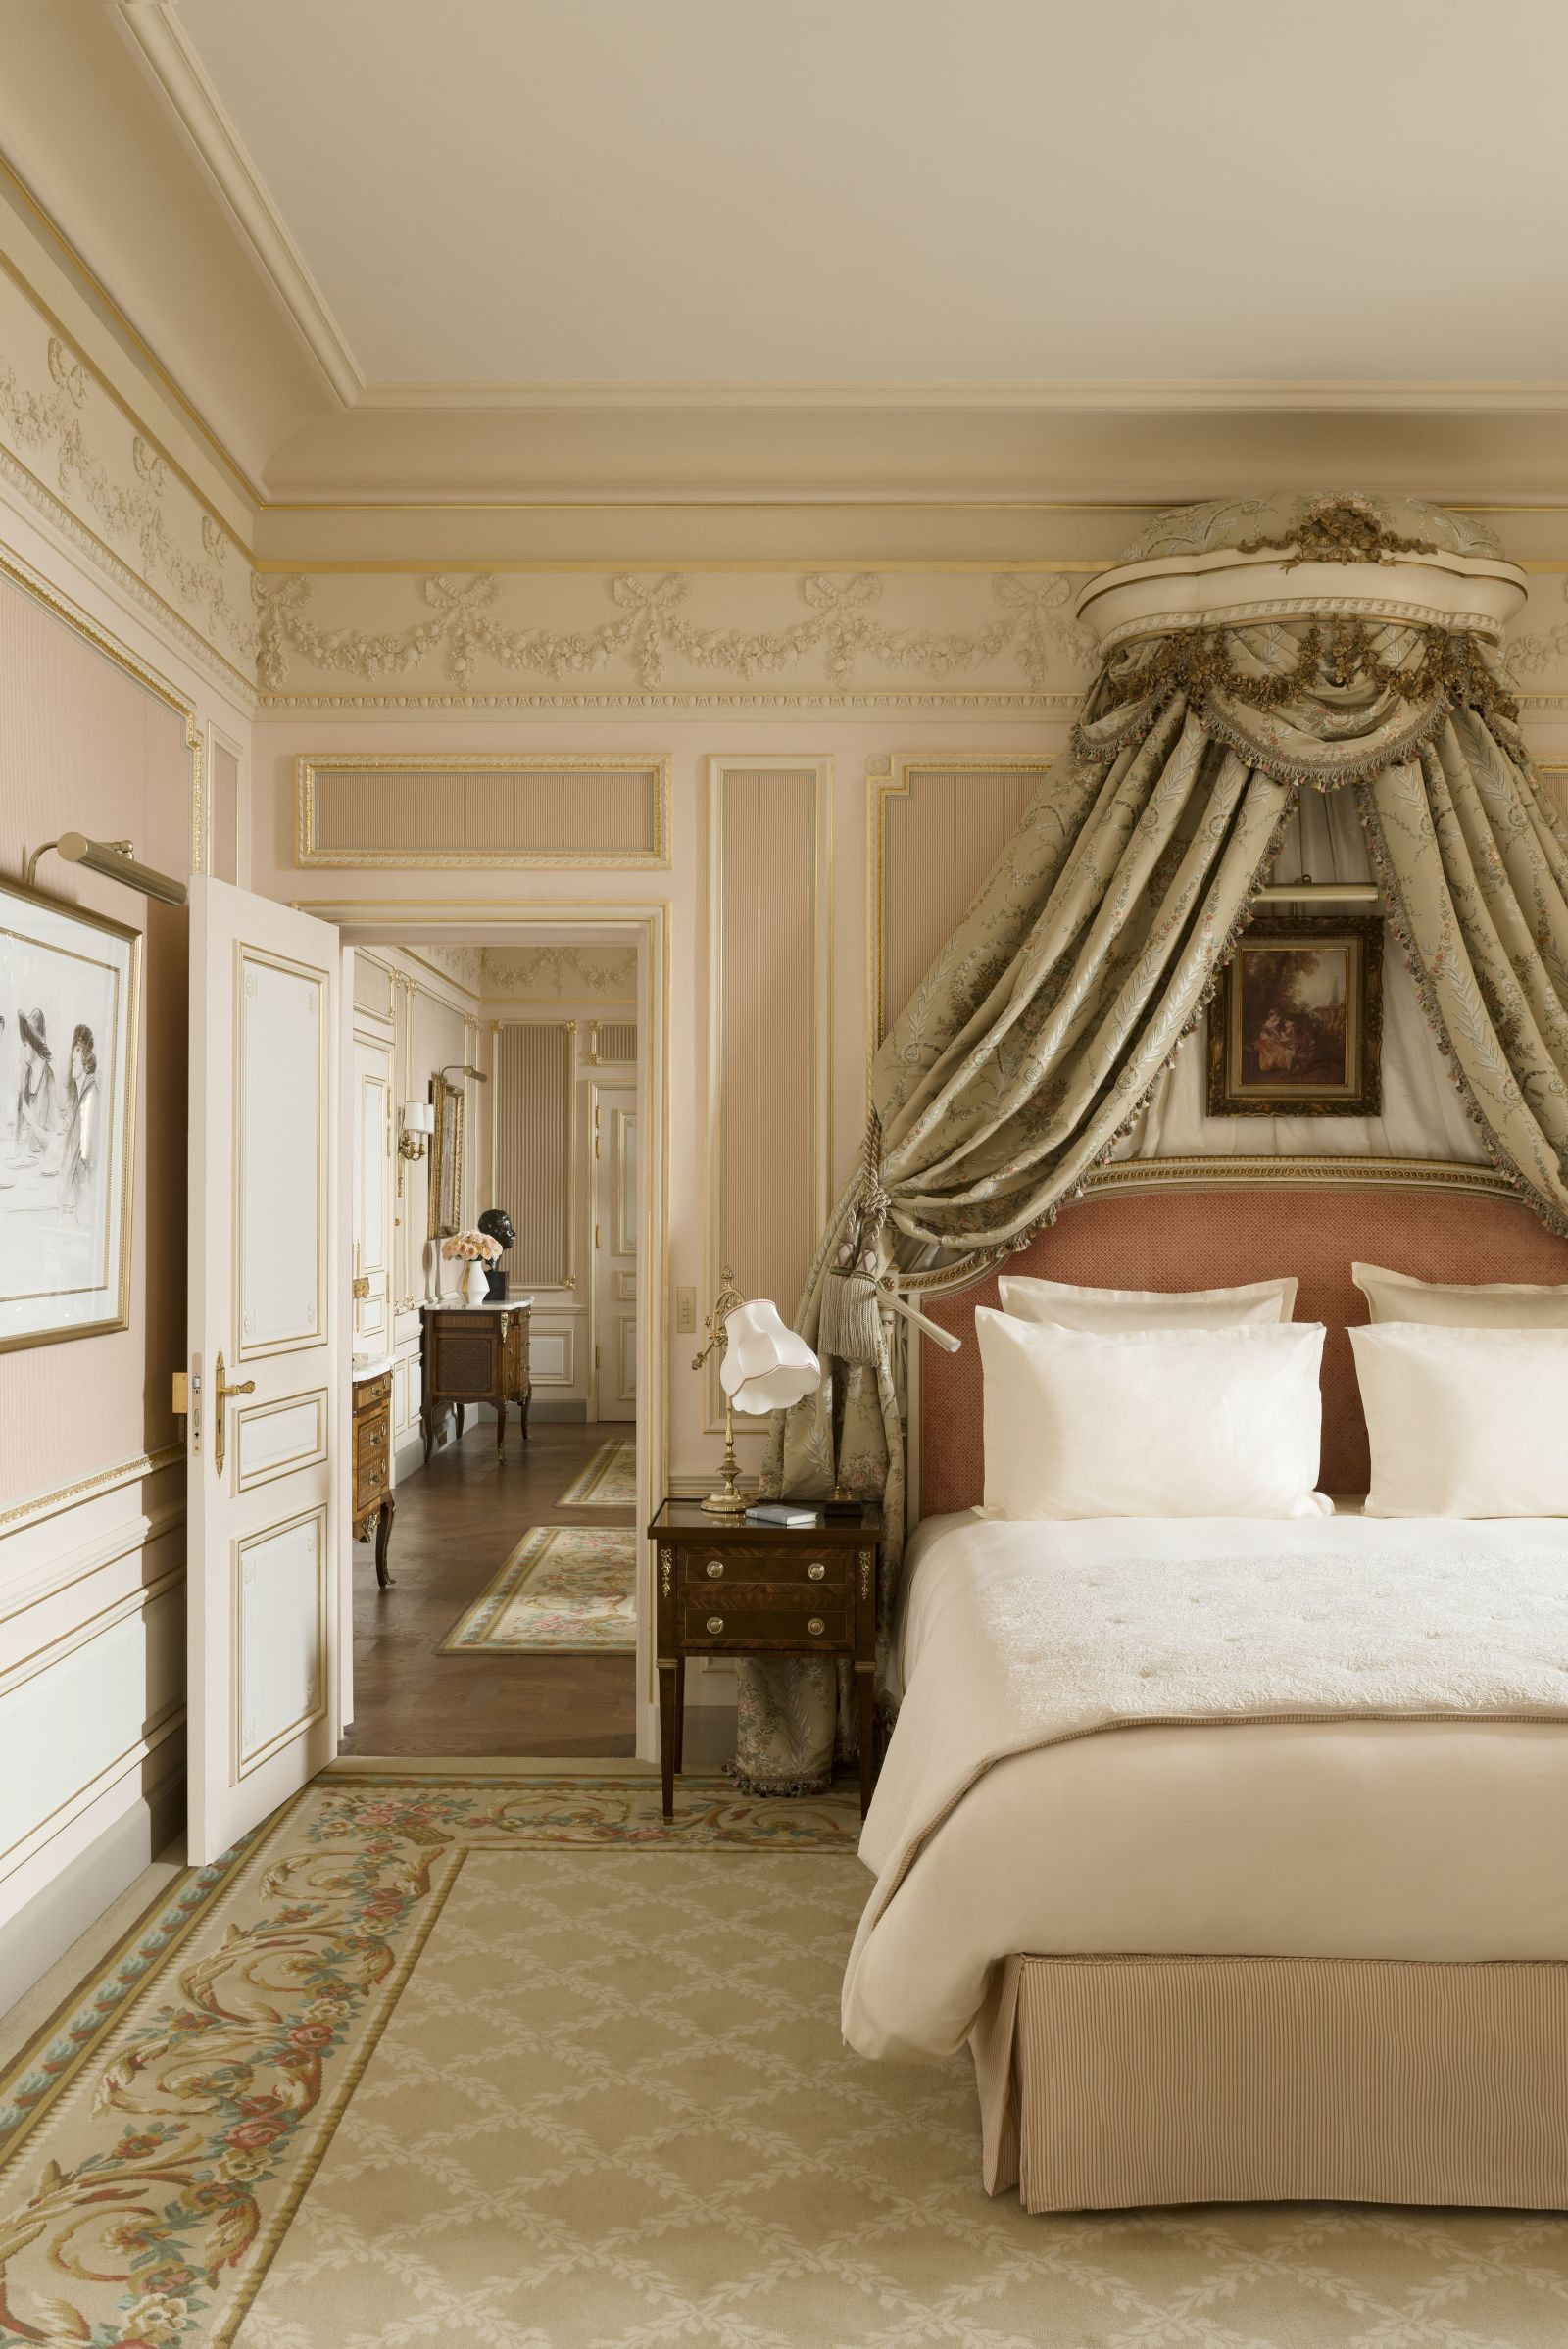 Design Betten G C3 Bcnstig Furniture Design For Your Home The New Ritz Paris Is As Beautiful As We Expected Carpe Diem Tv